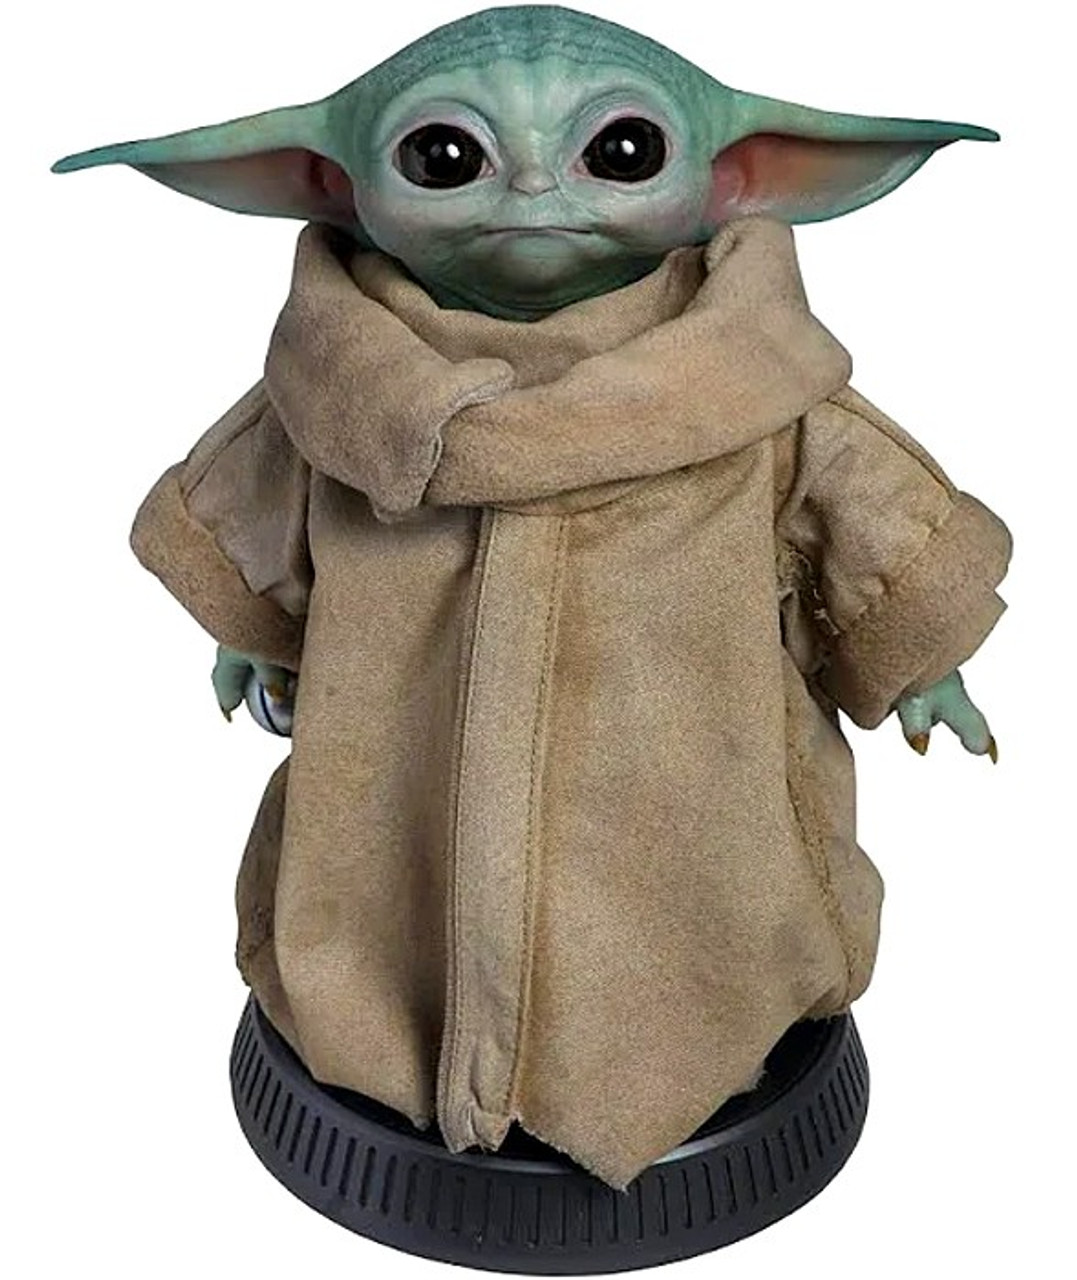 Star Wars Mandalorian The Child 7 5 Baby Yoda Electronic Talking Plush In Hand Star Wars Tv Movie And Video Game Action Figures Action Figures